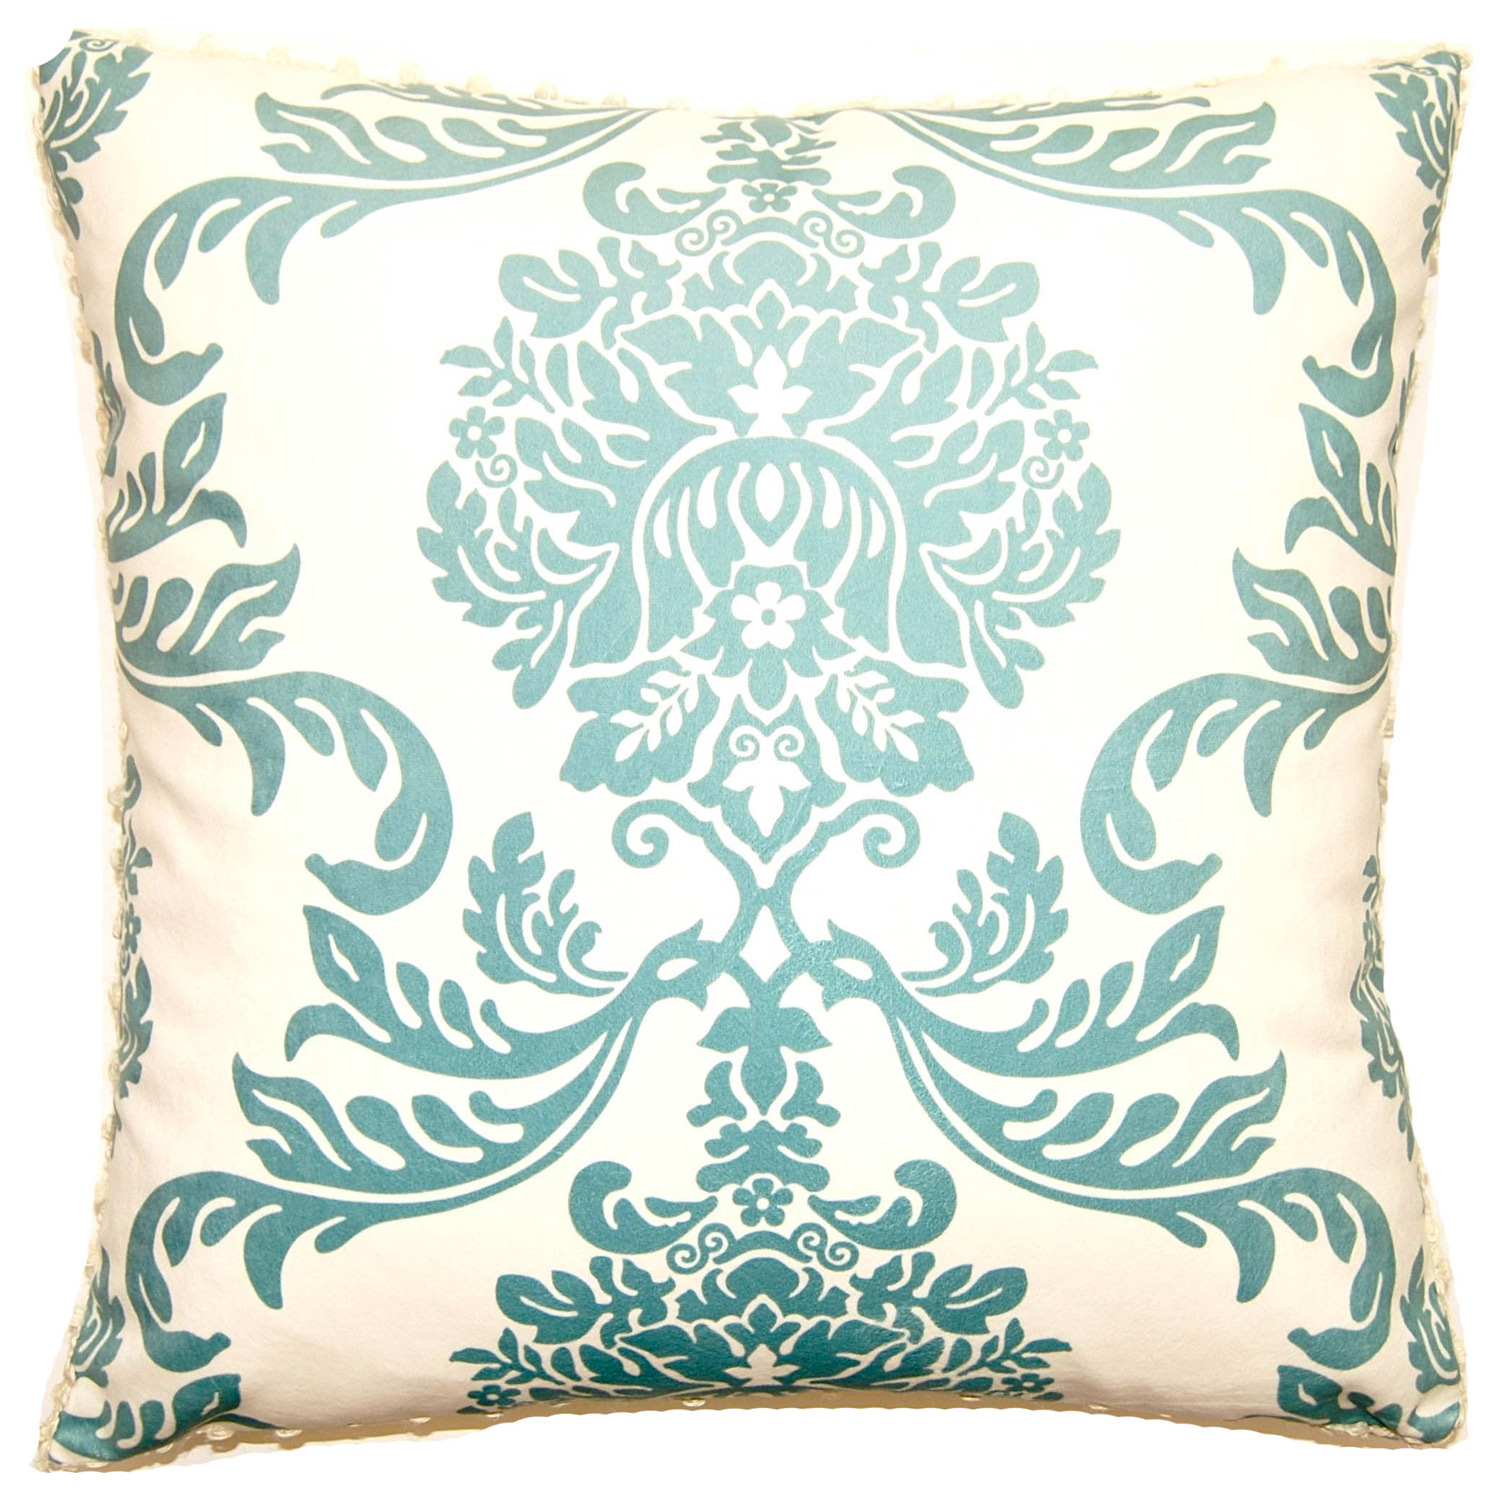 Cool Cushions teal throw pillows for Queen bed size king bedsize or sectional sofa also wicker rattan chairs for living room accesories parts furniture ideas